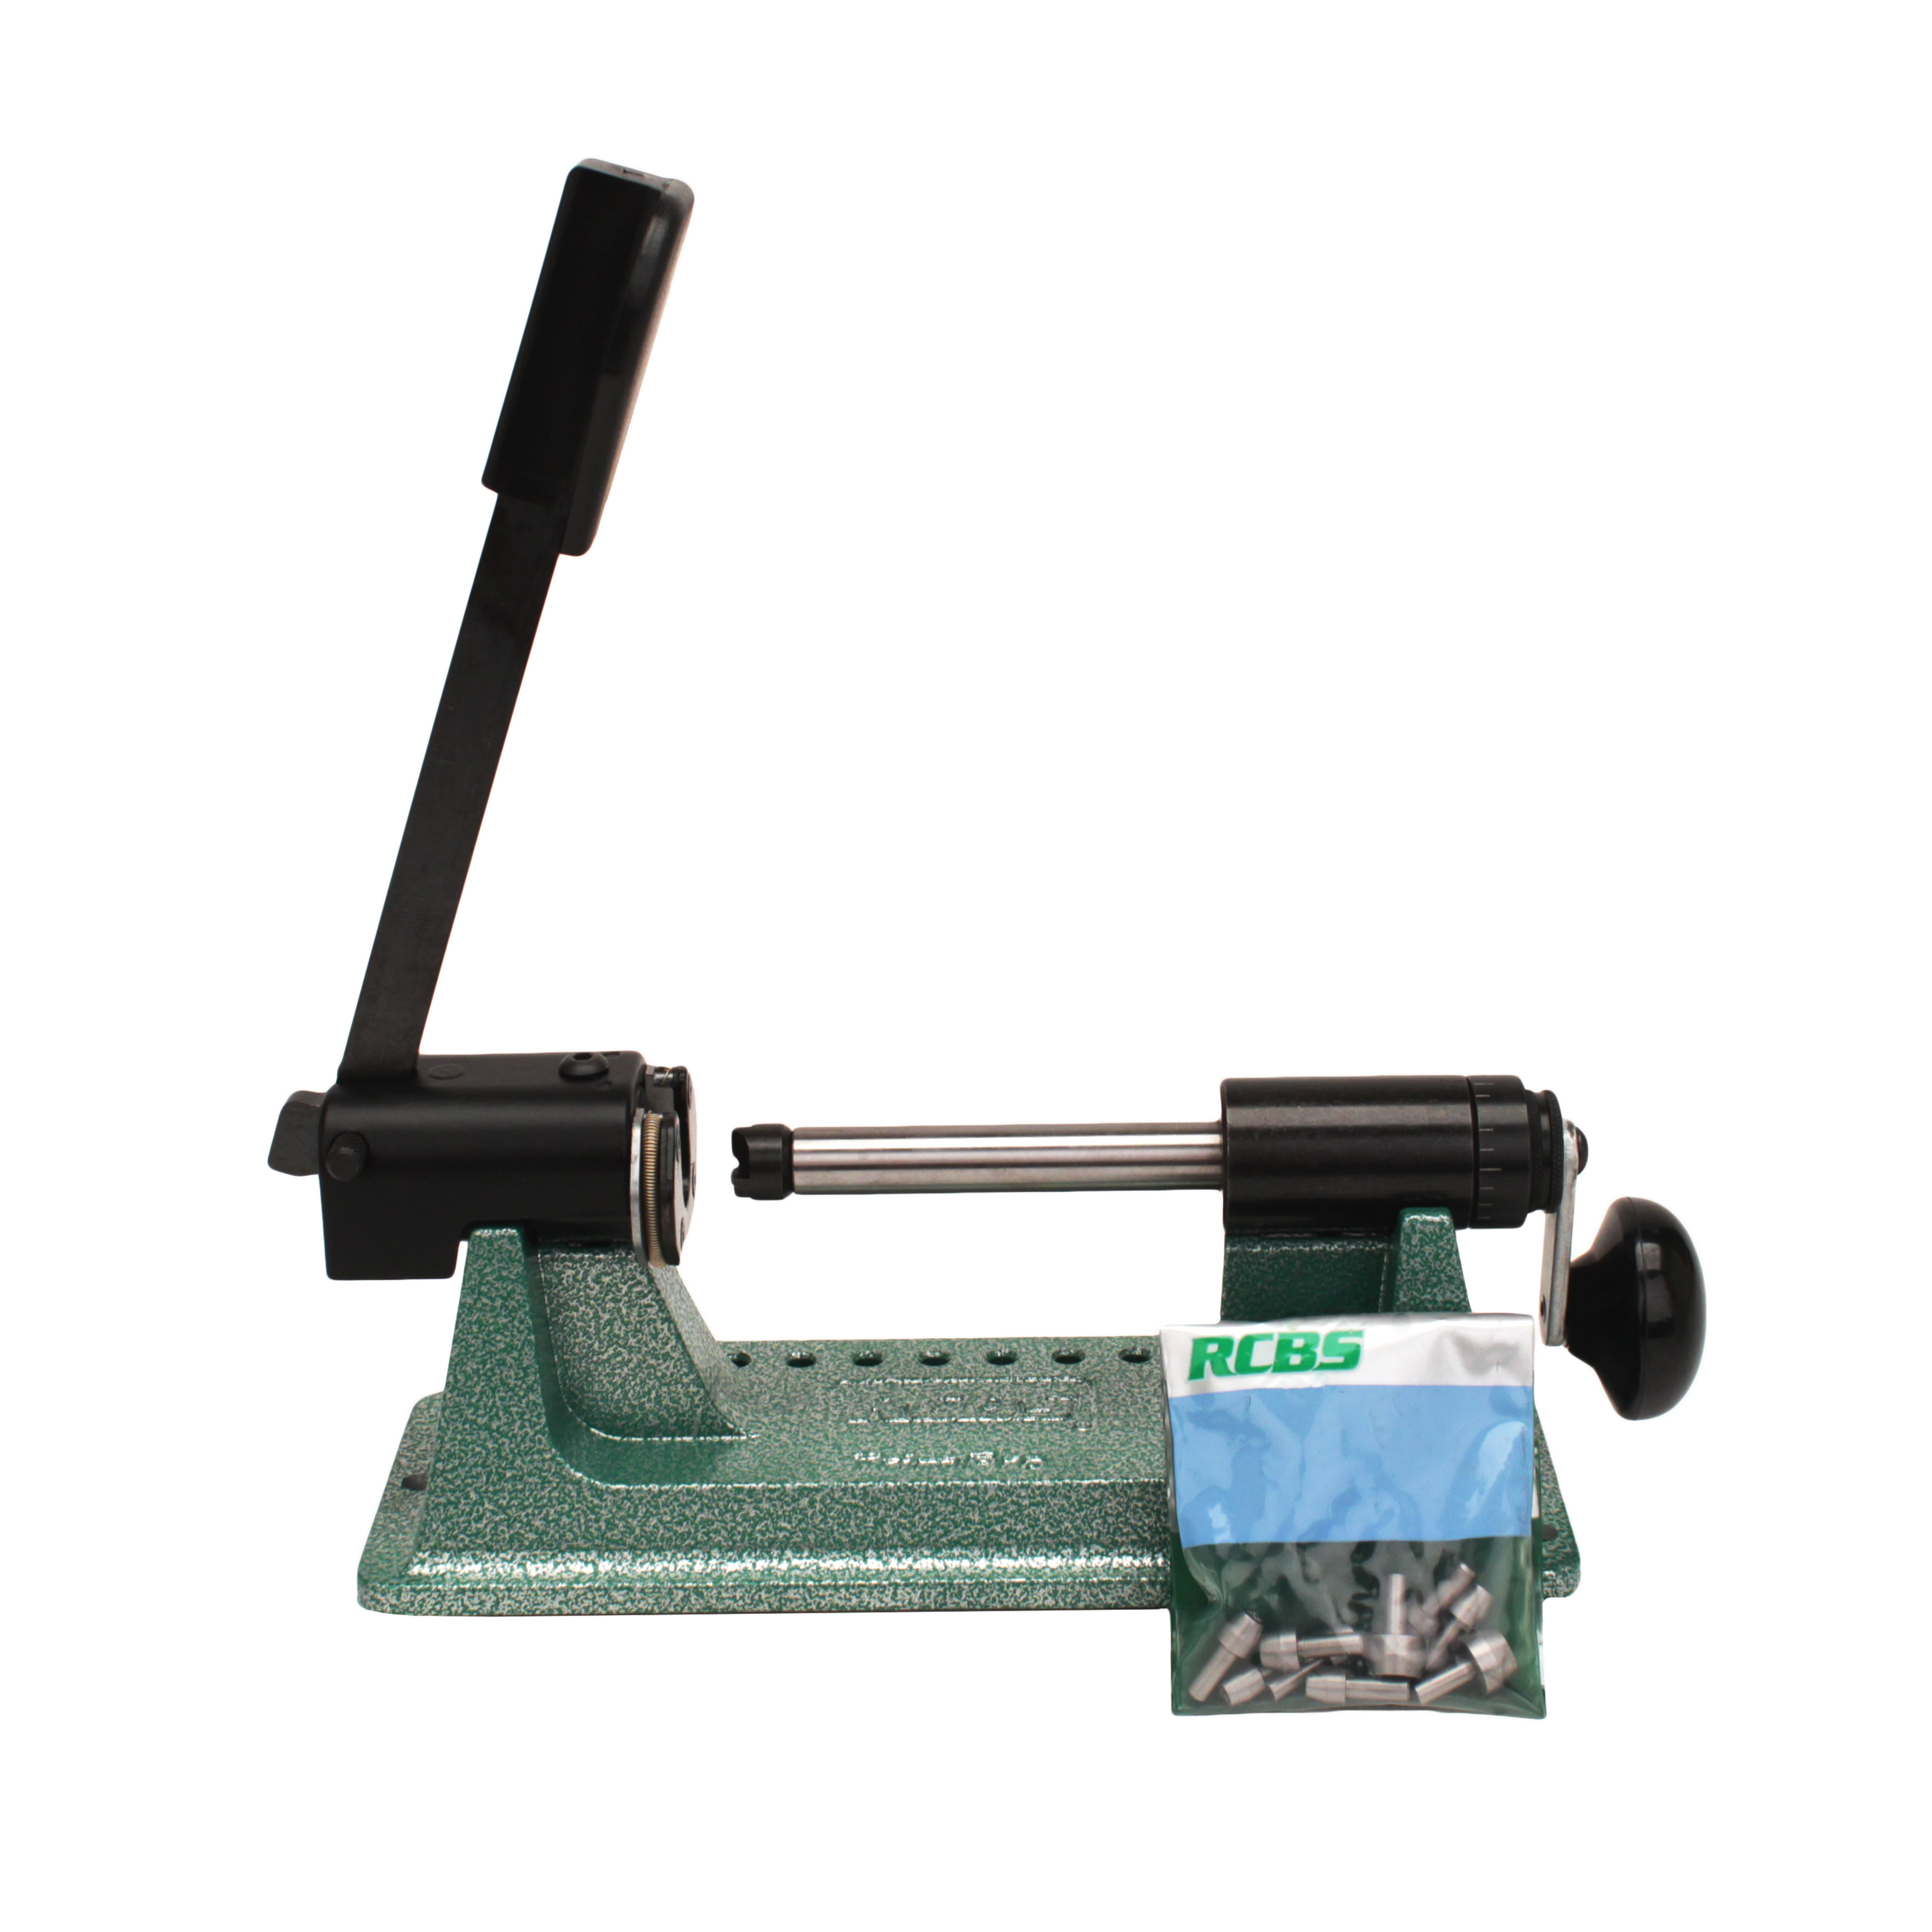 RCBS TrimPro 2 Kit with Spring Loaded Shellholder